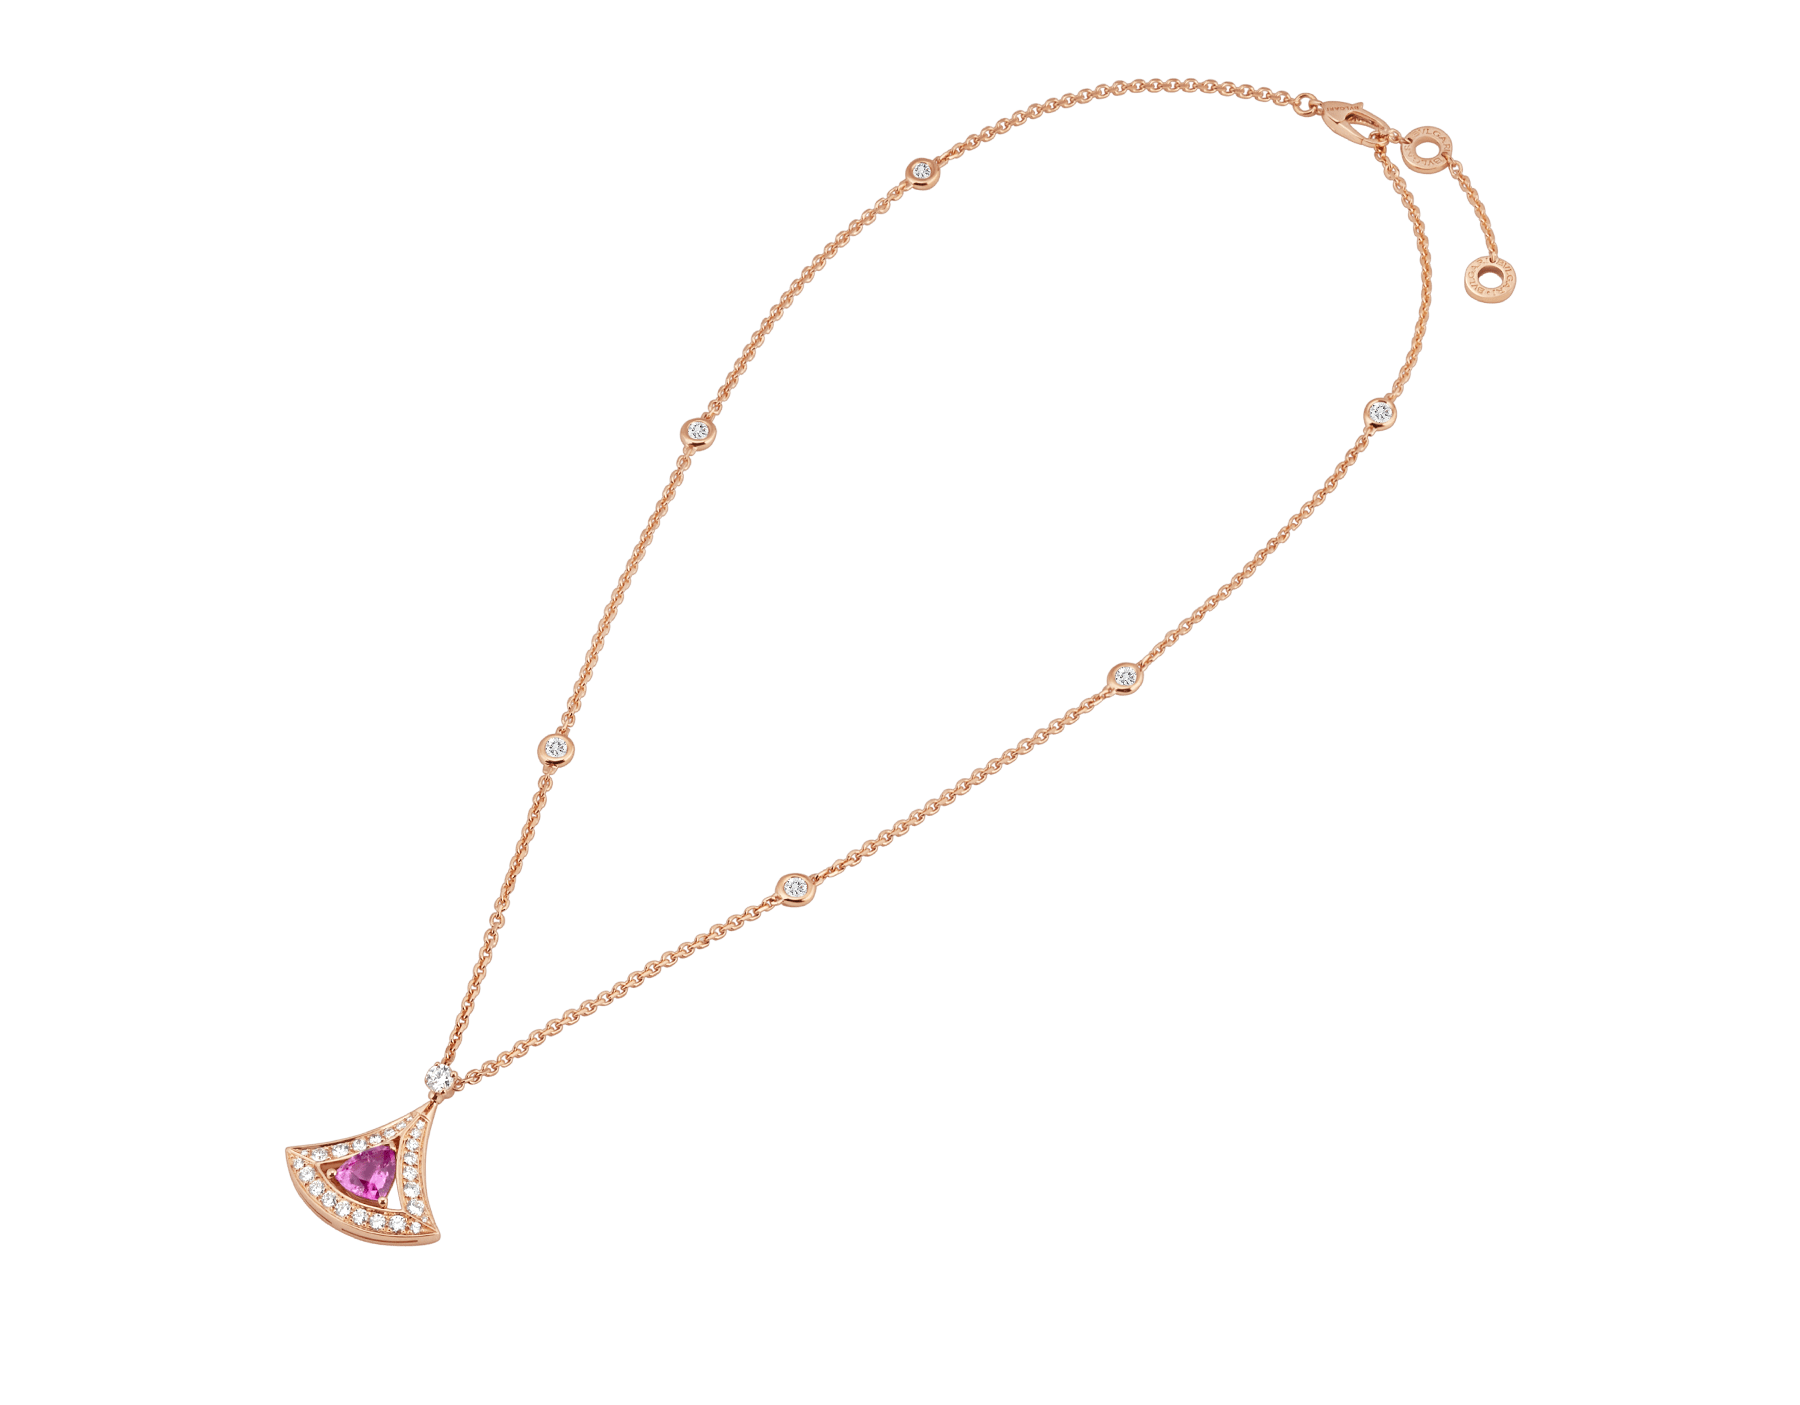 DIVAS' DREAM openwork necklace with 18 kt rose gold chain set with diamonds and 18 kt rose gold pendant with a pink tourmaline and set with pavé diamonds. 354366 image 2